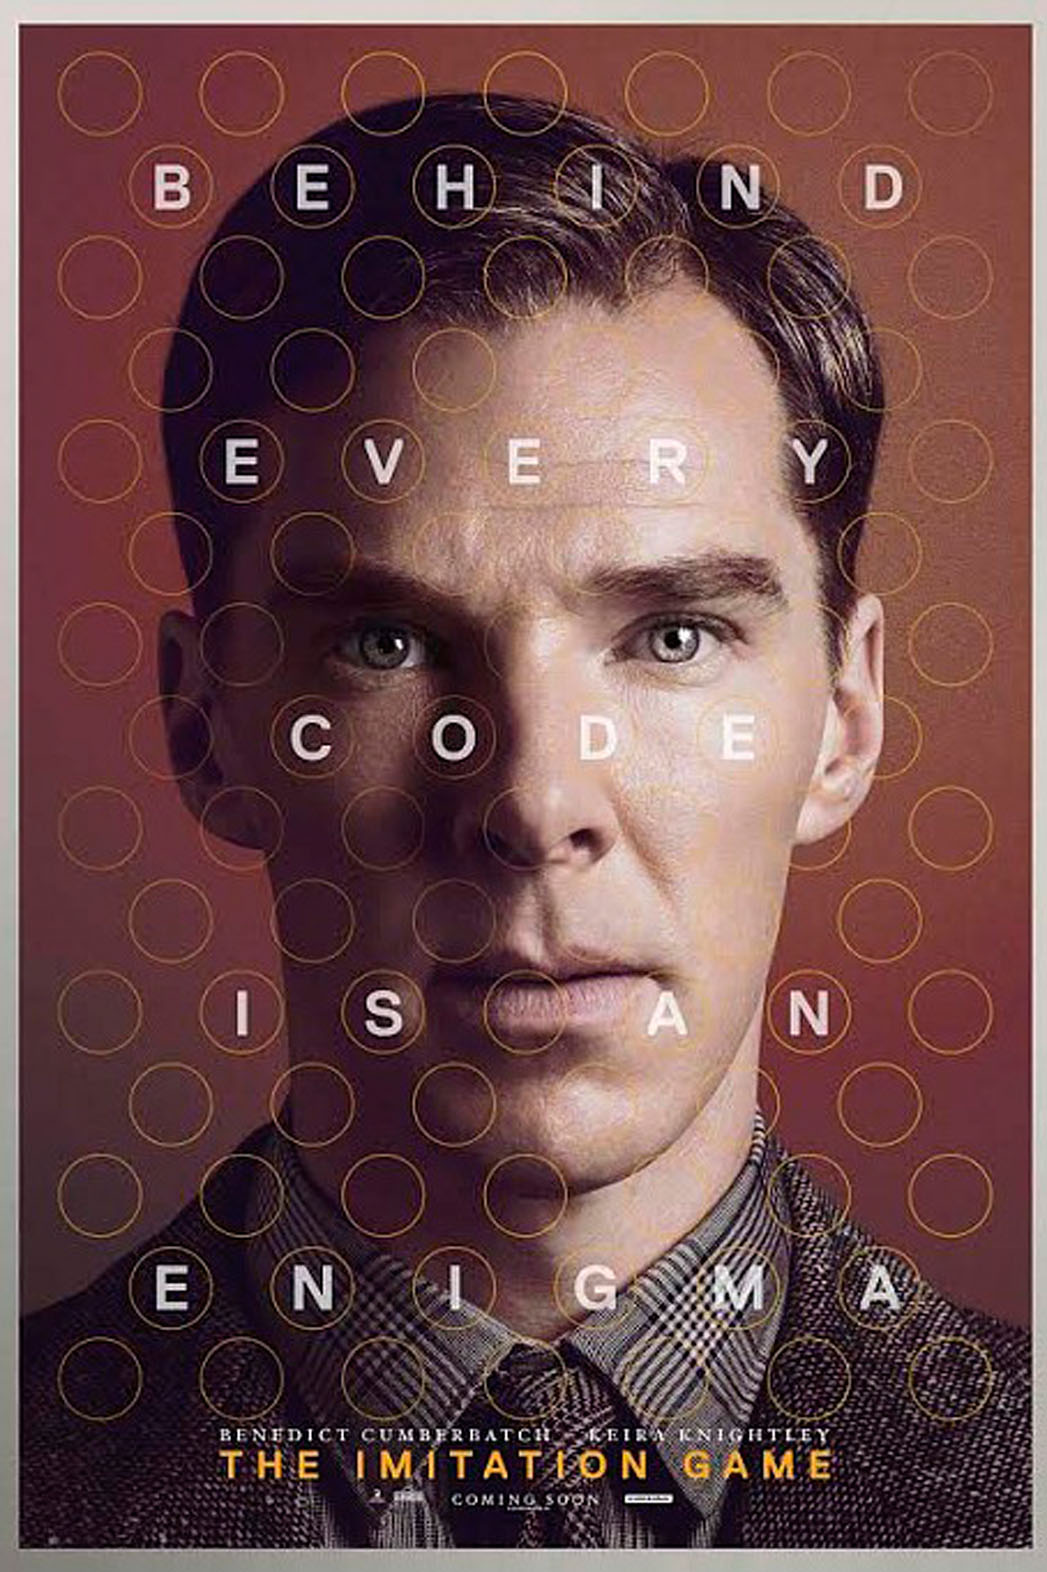 The Imitation Game: character poster internazionale per Benedict Cumberbatch